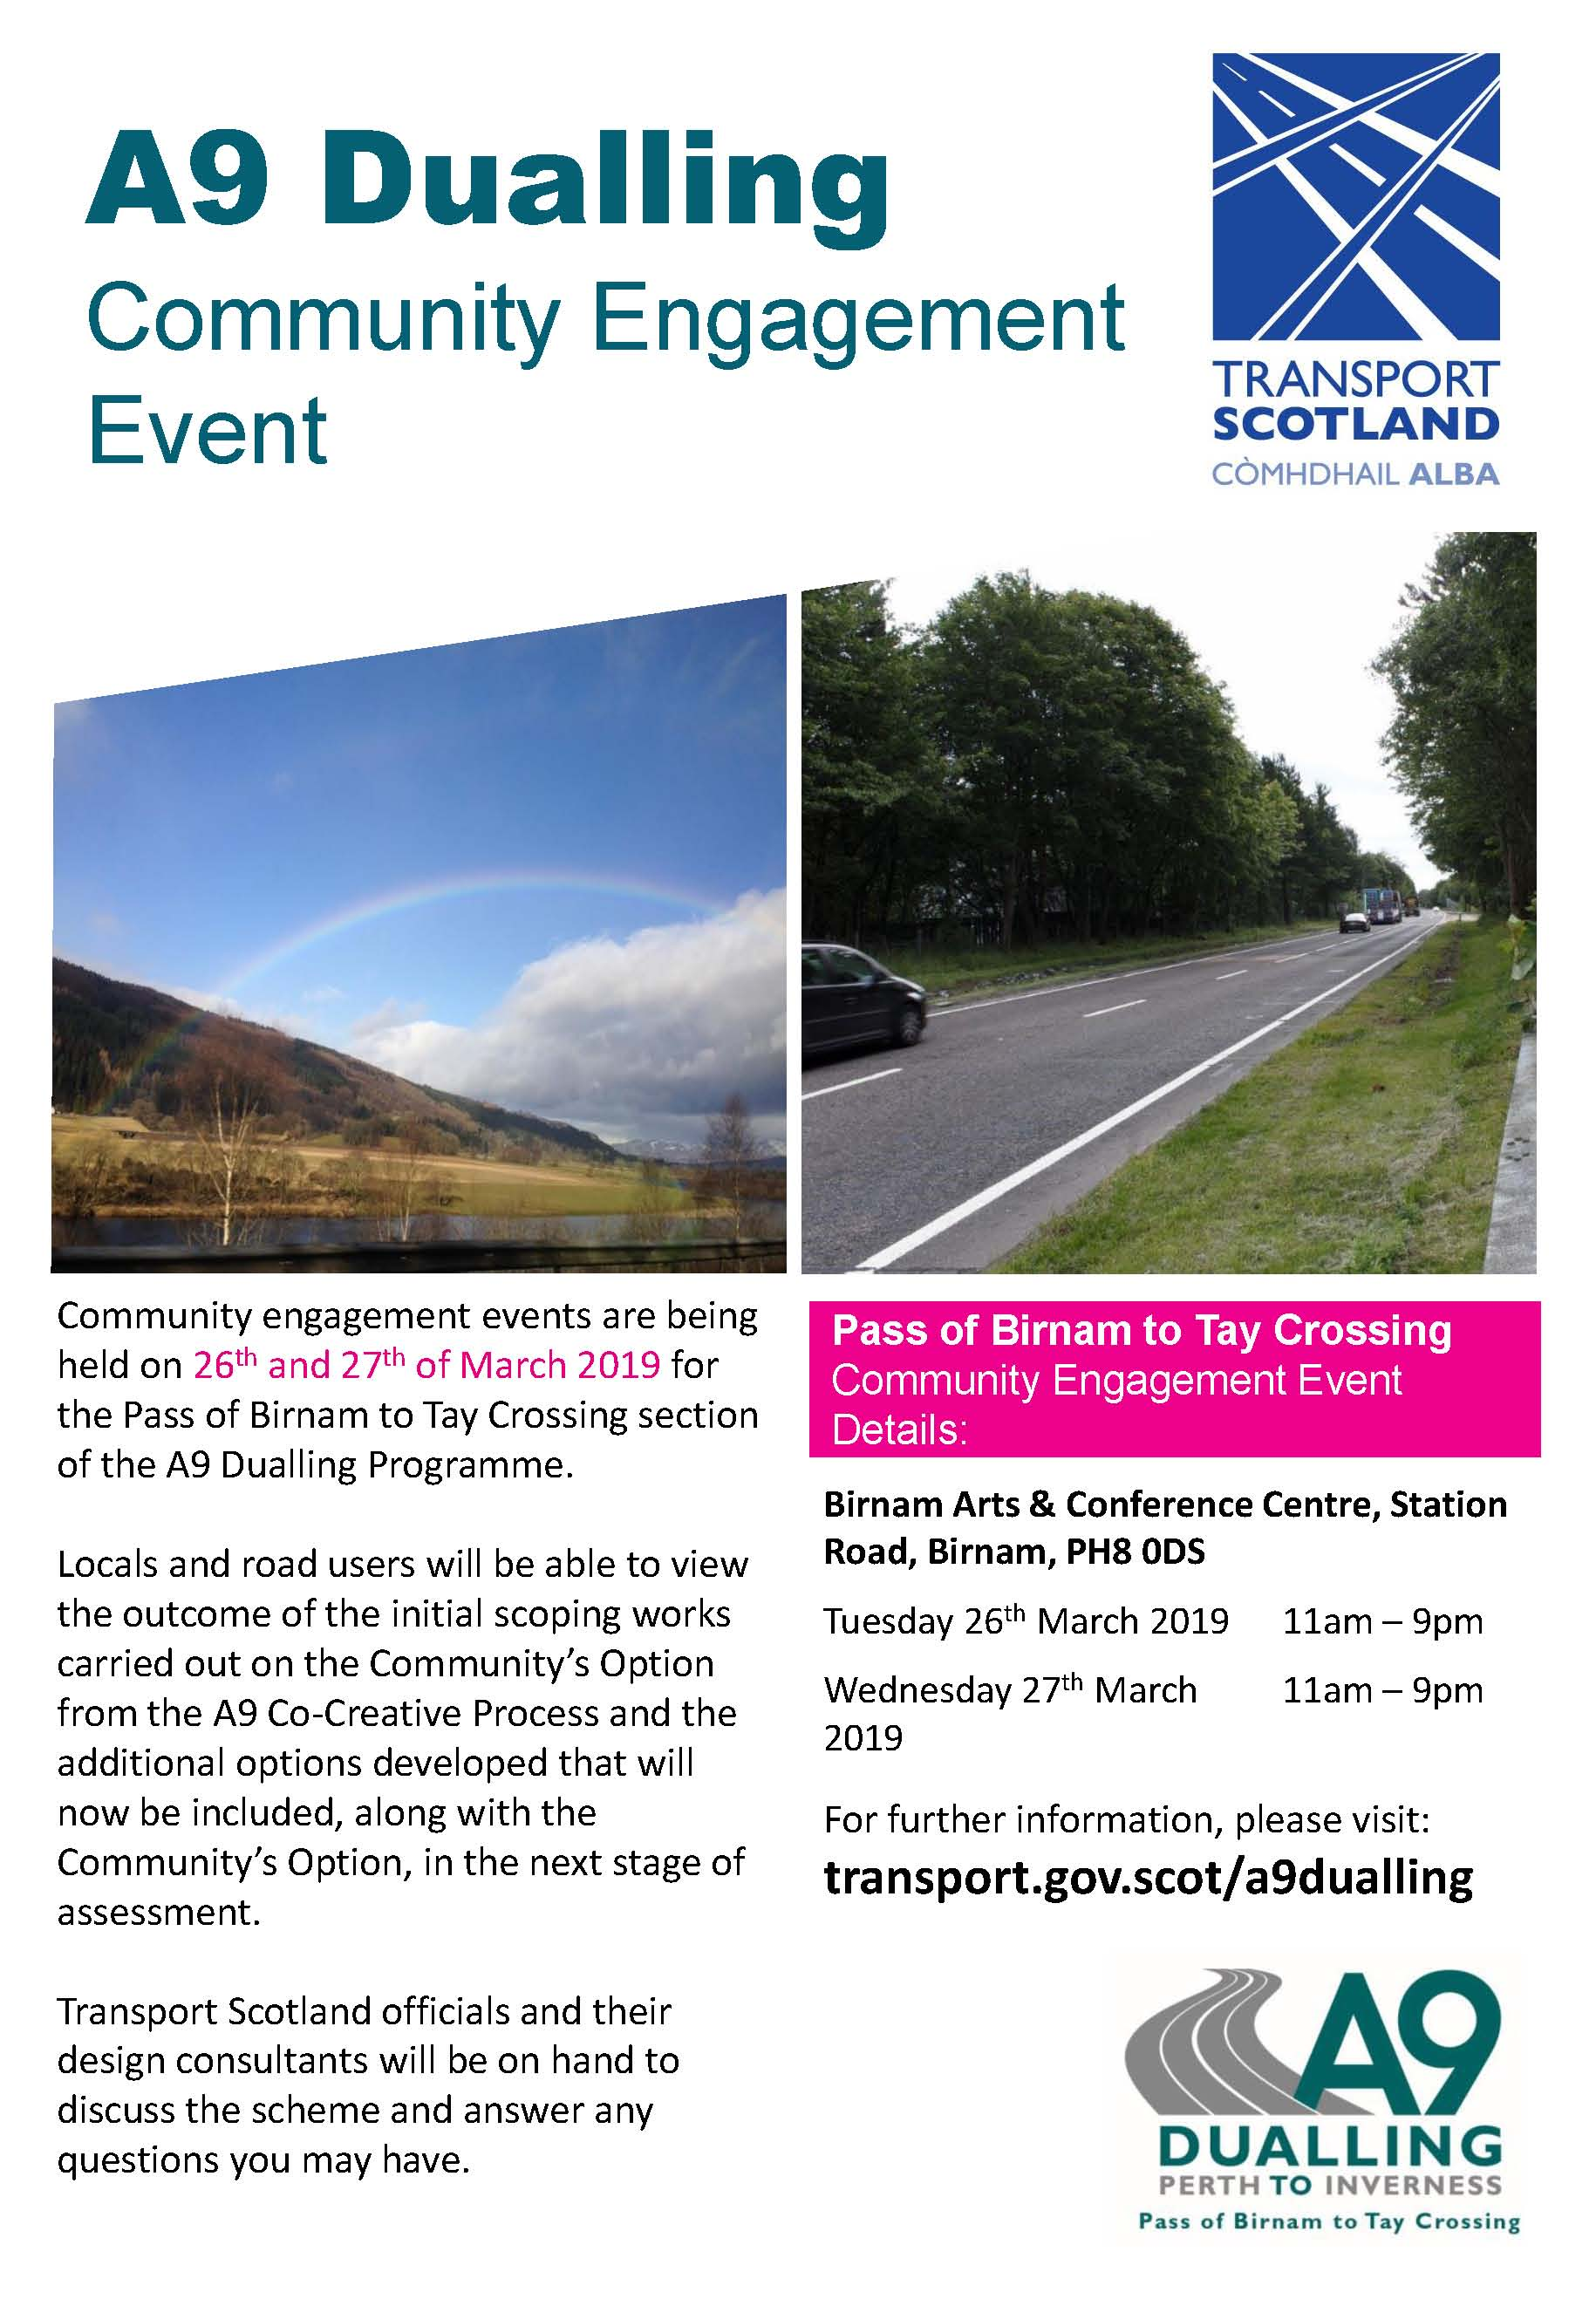 A9 Dualling Community Engagement Event 2627 March